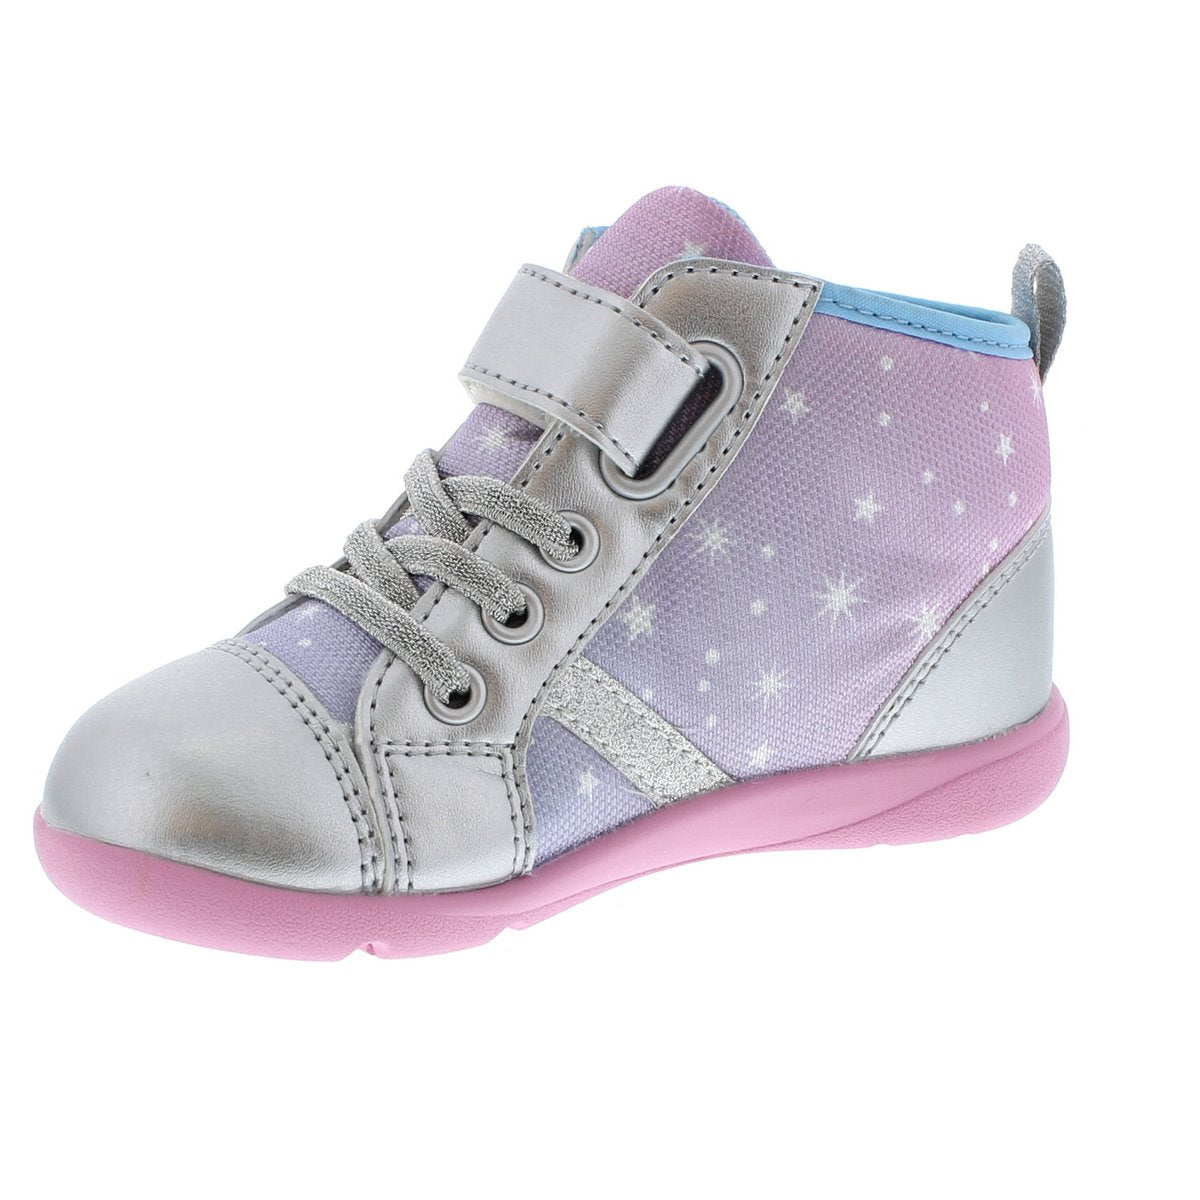 Child Tsukihoshi Star Sneaker in Silver/Pink from the front view